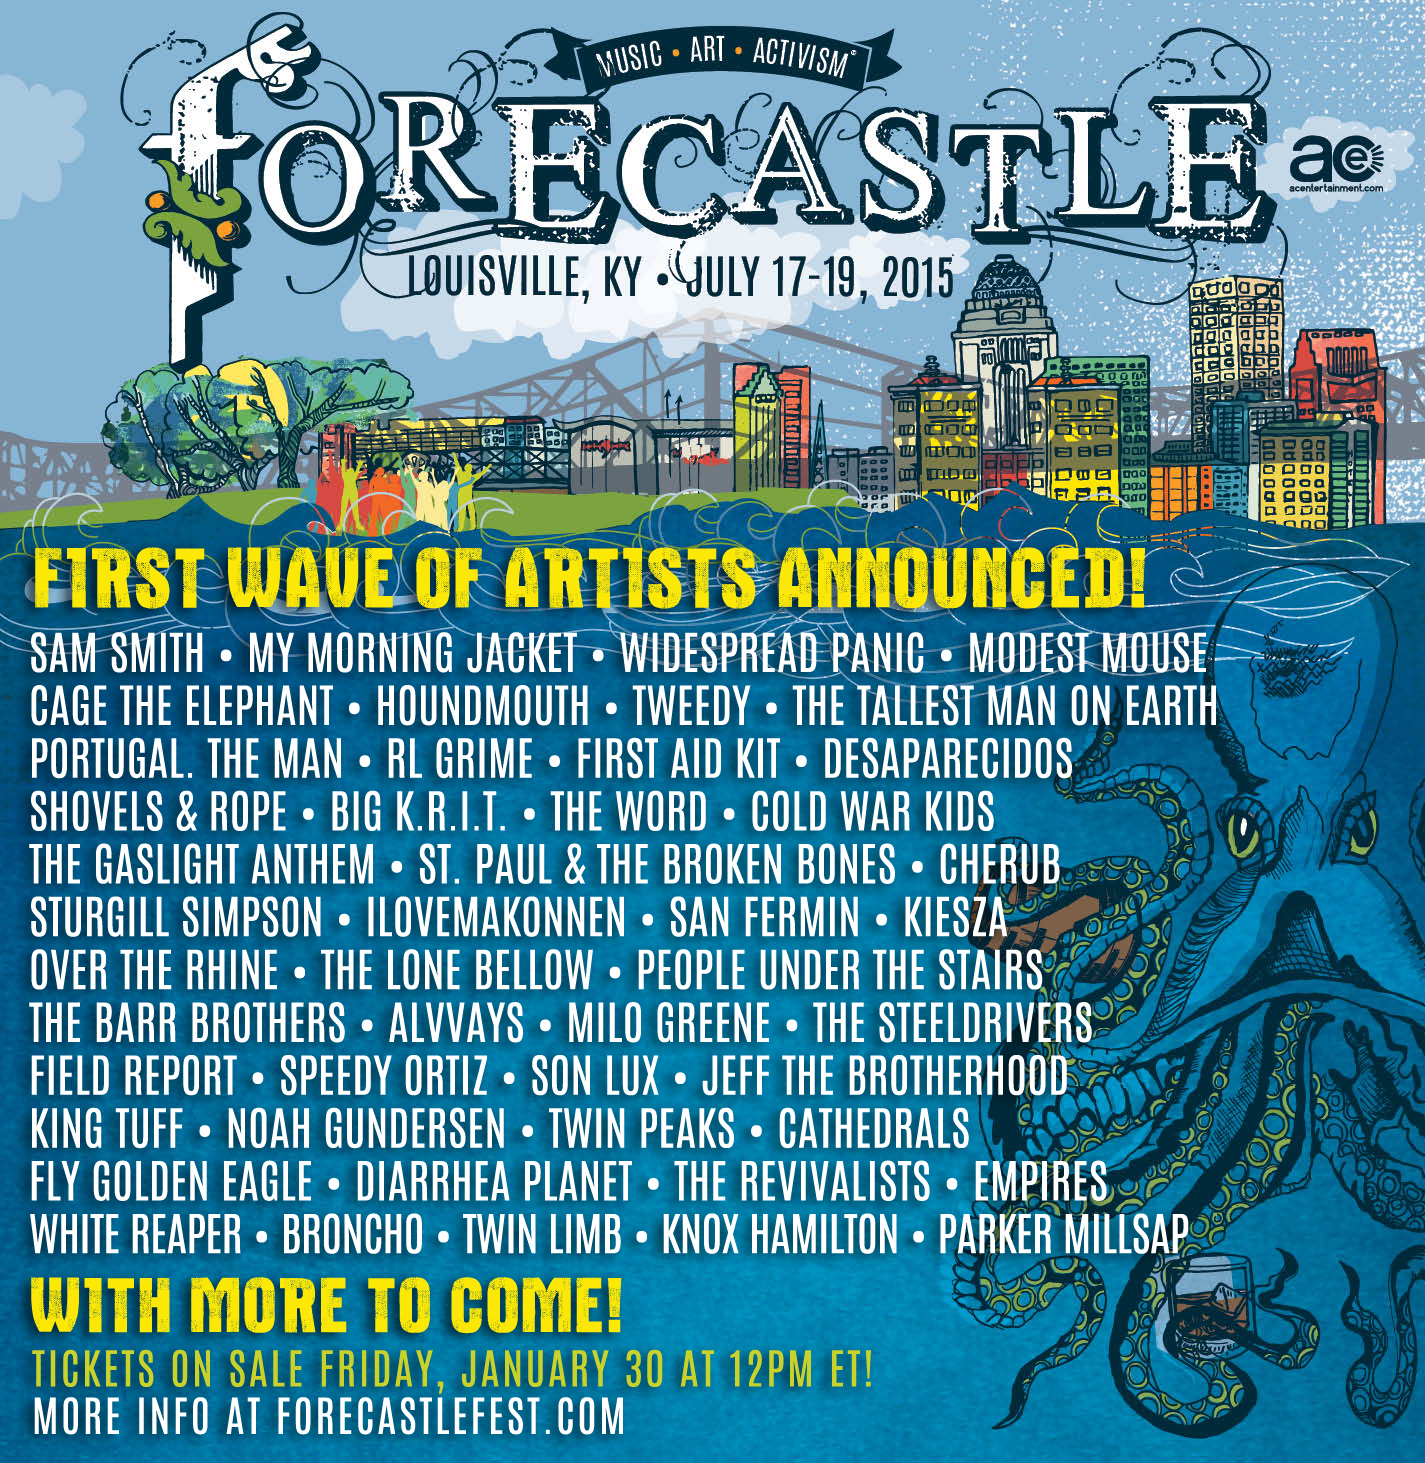 Forecastle Festival Lineup Announcement